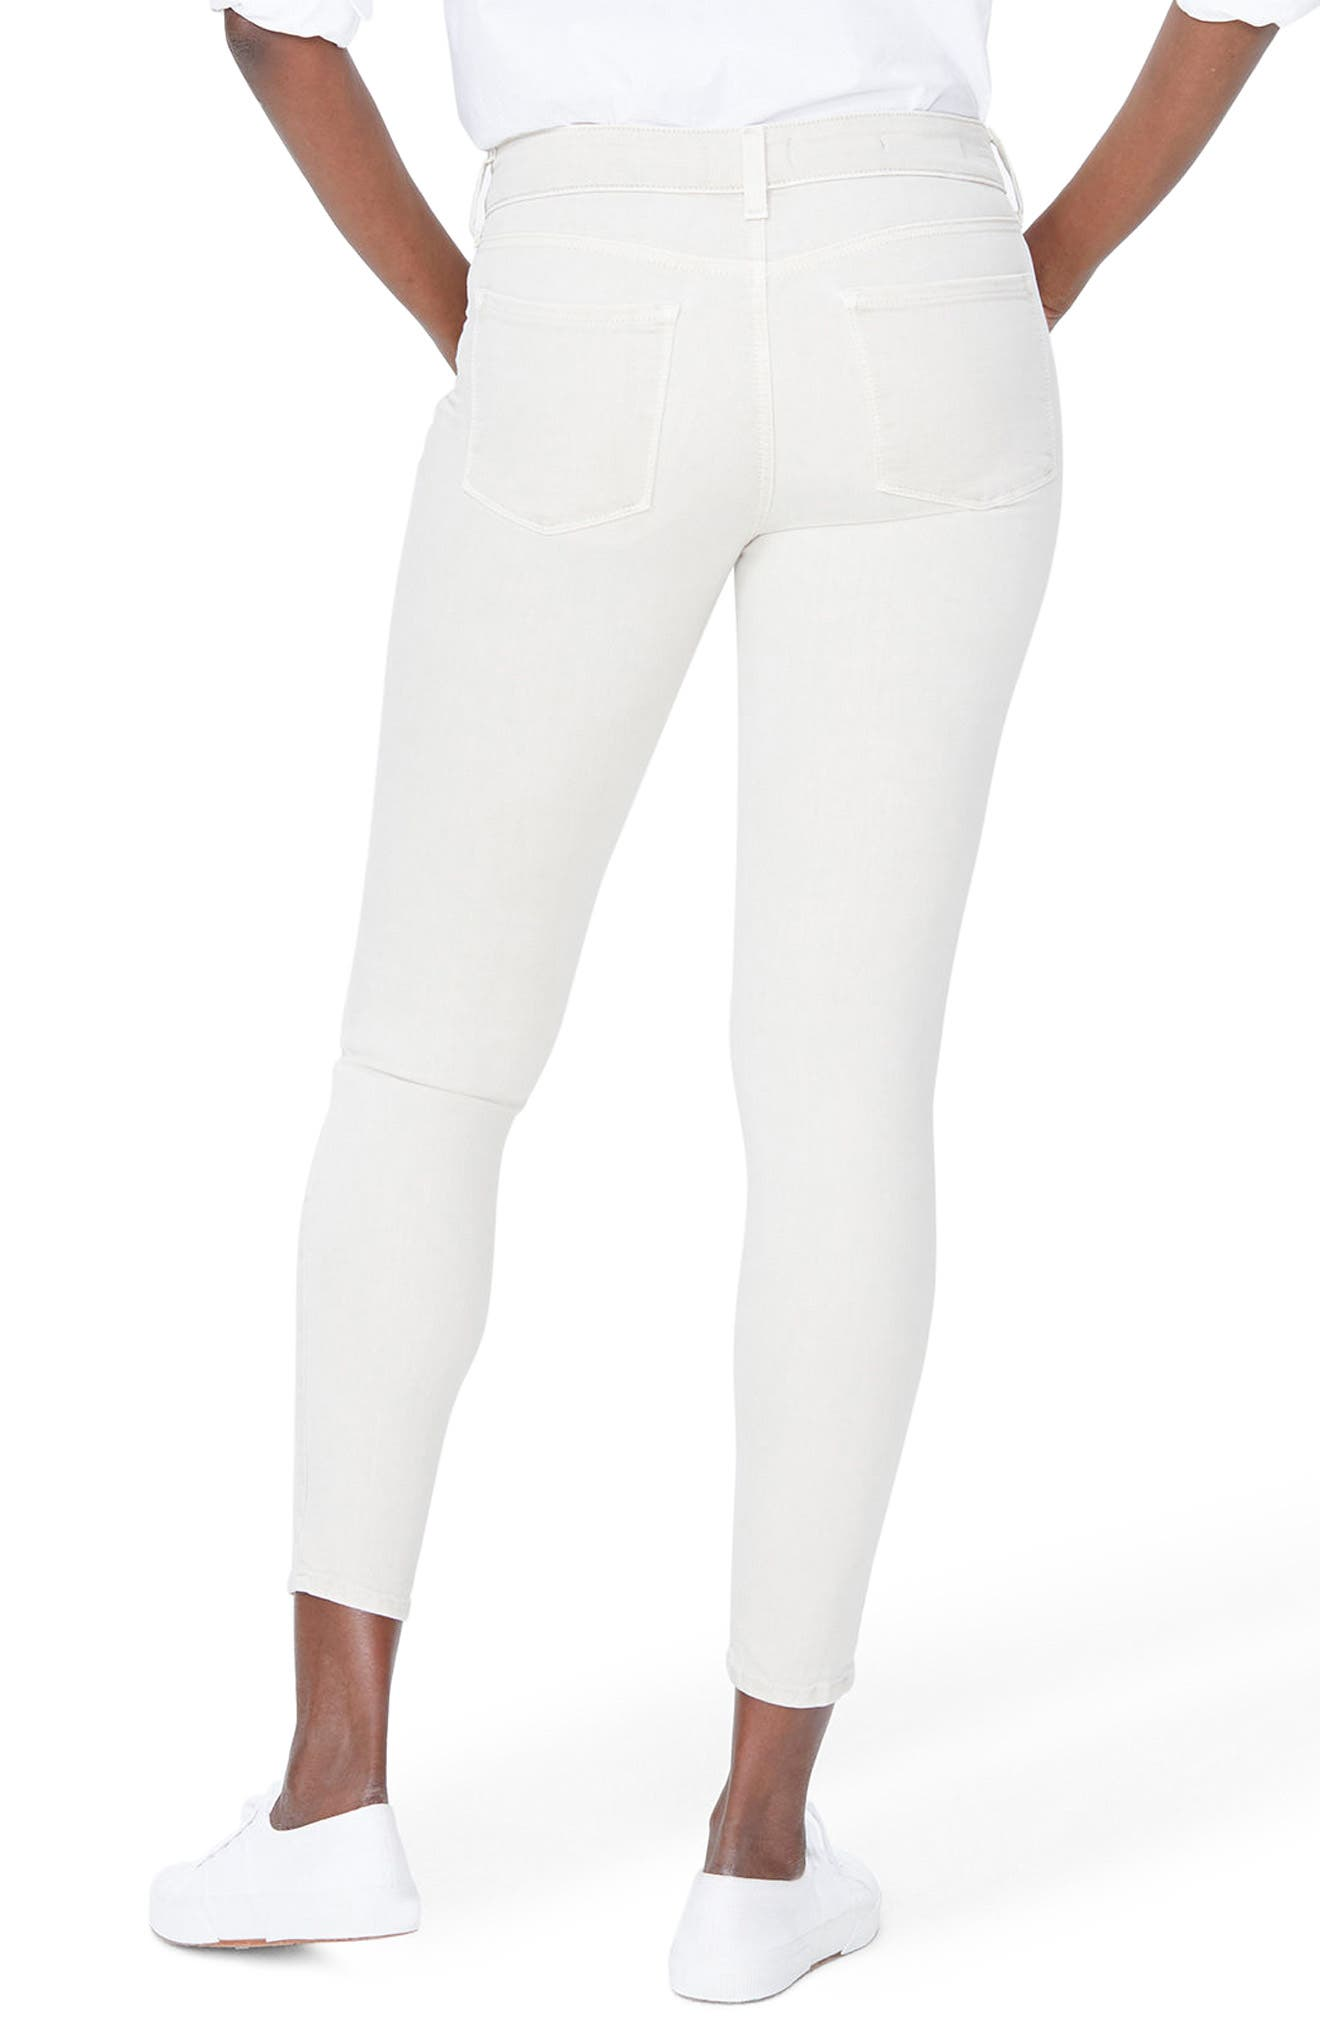 Ami Ankle Skinny Jeans,                             Alternate thumbnail 2, color,                             Feather